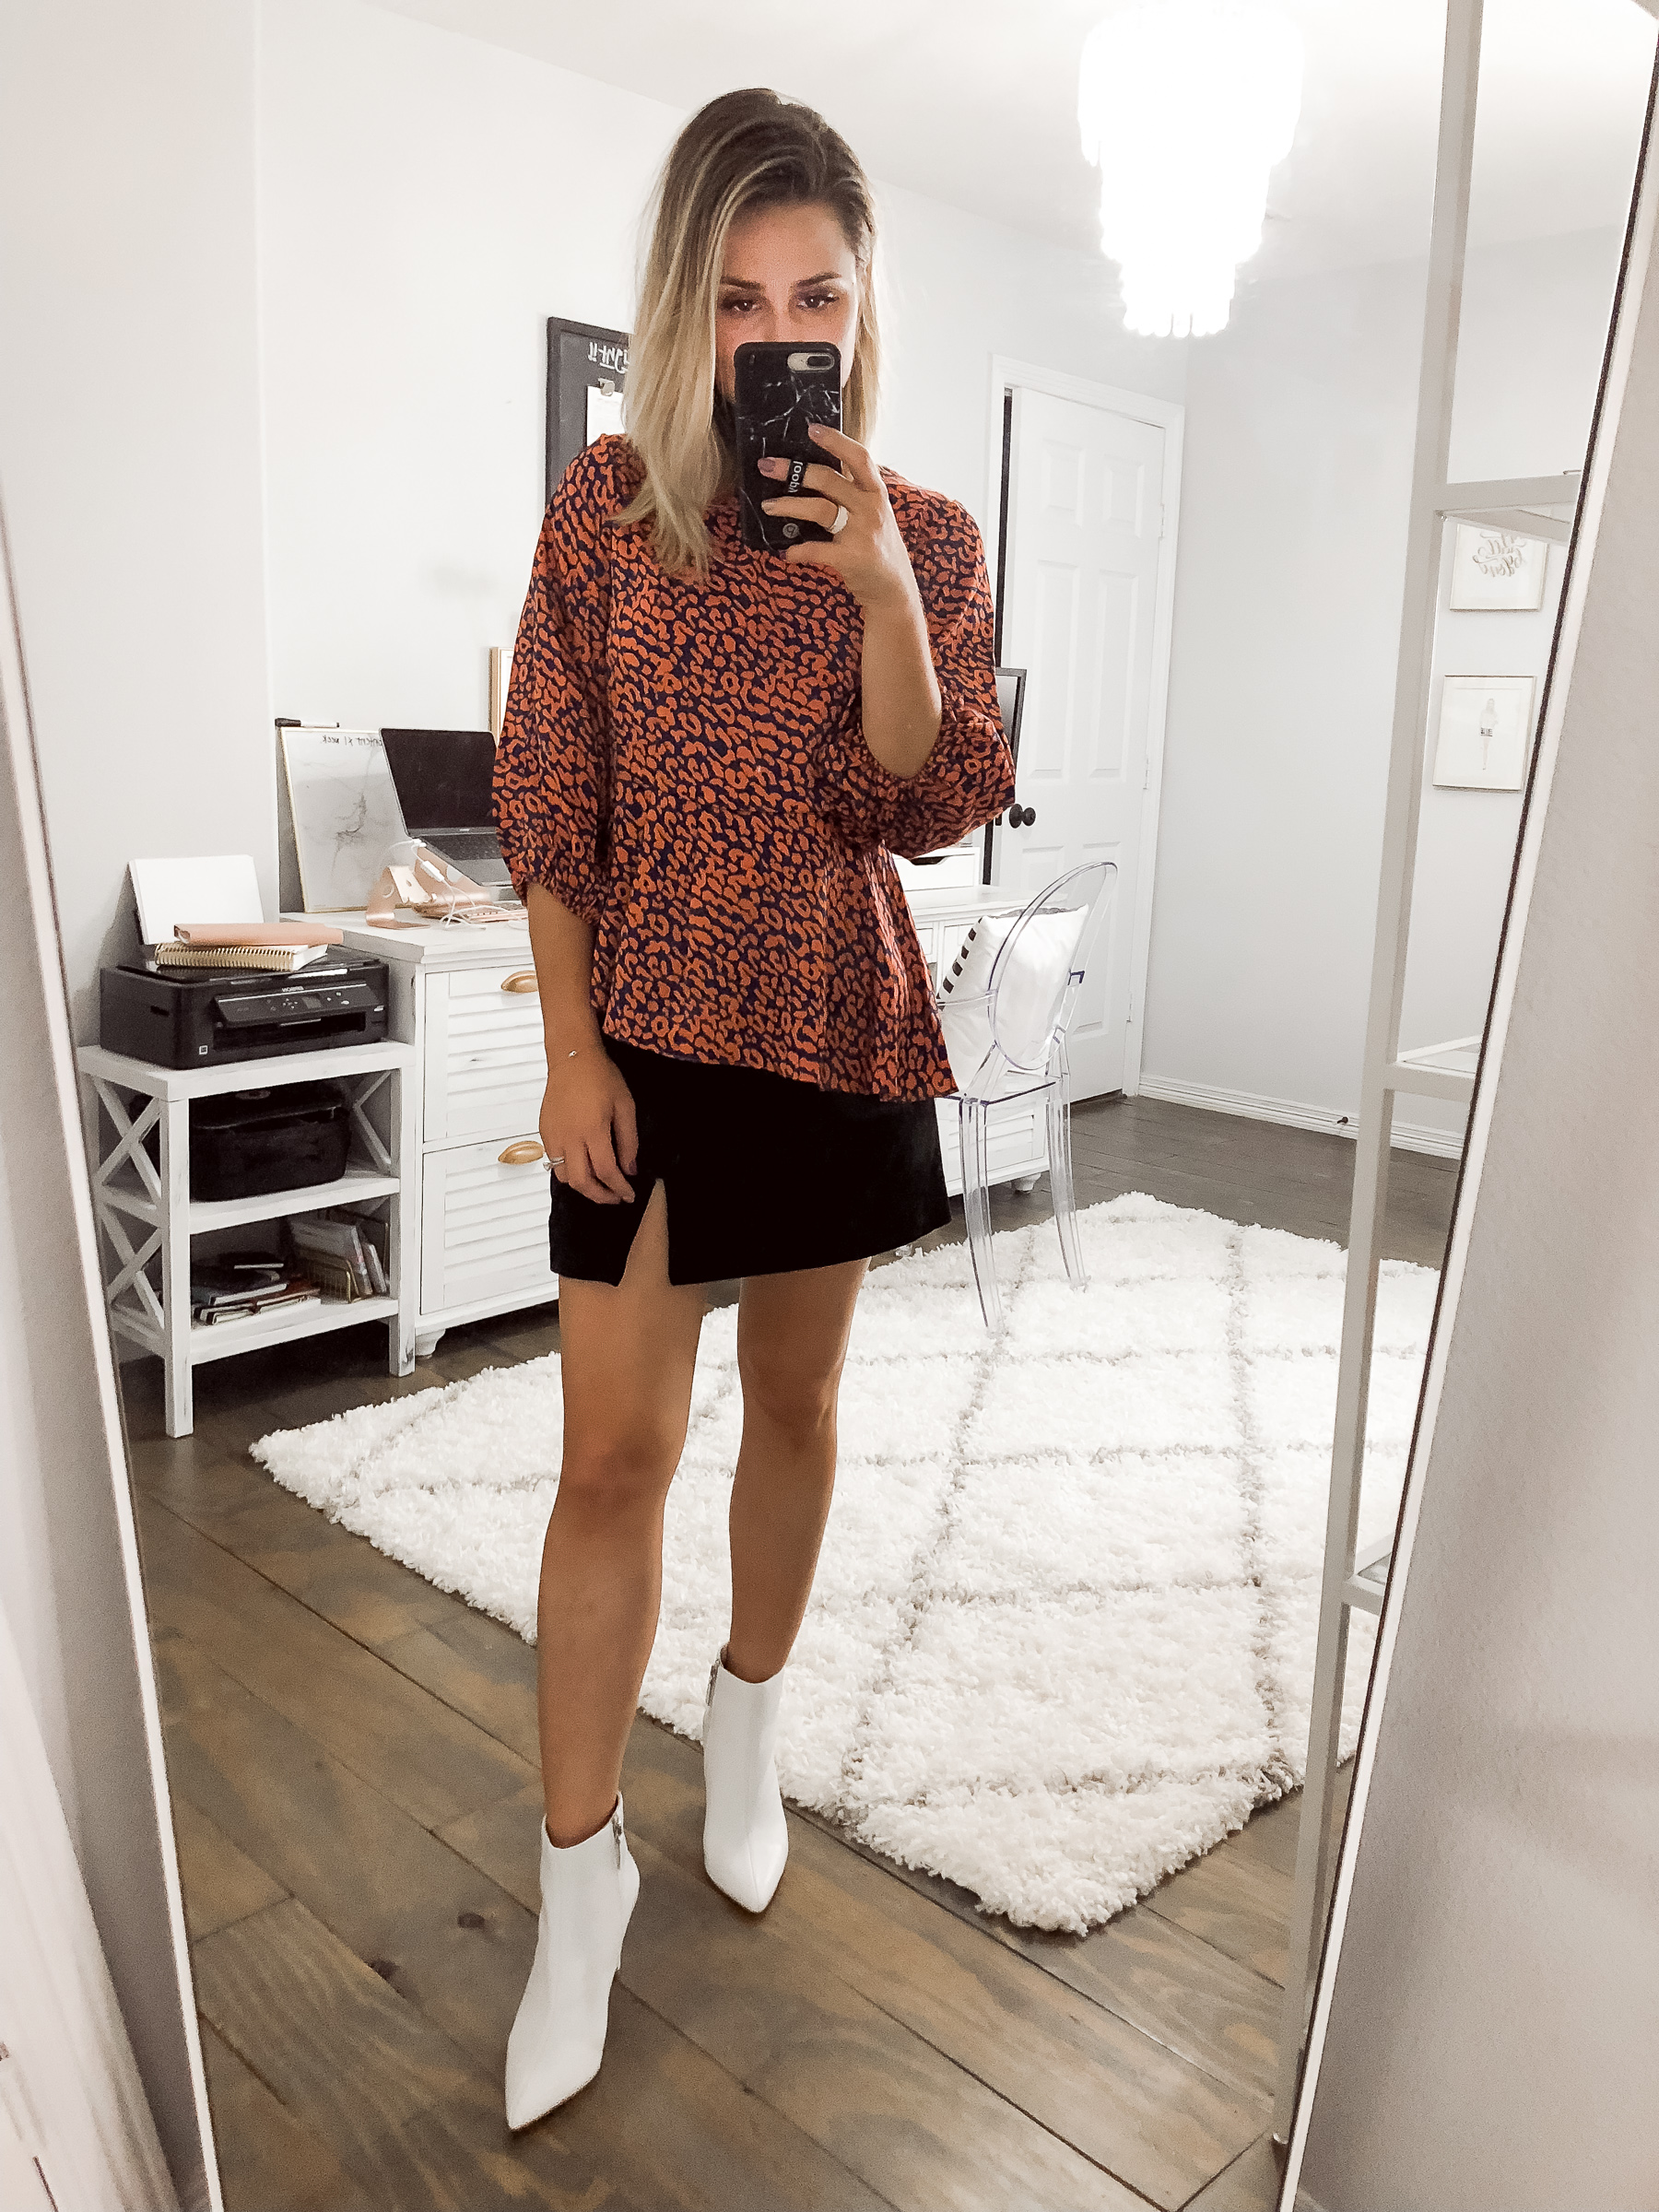 Houston fashion blogger Uptown with Elly Brown wears an animal print top and white ankle boots